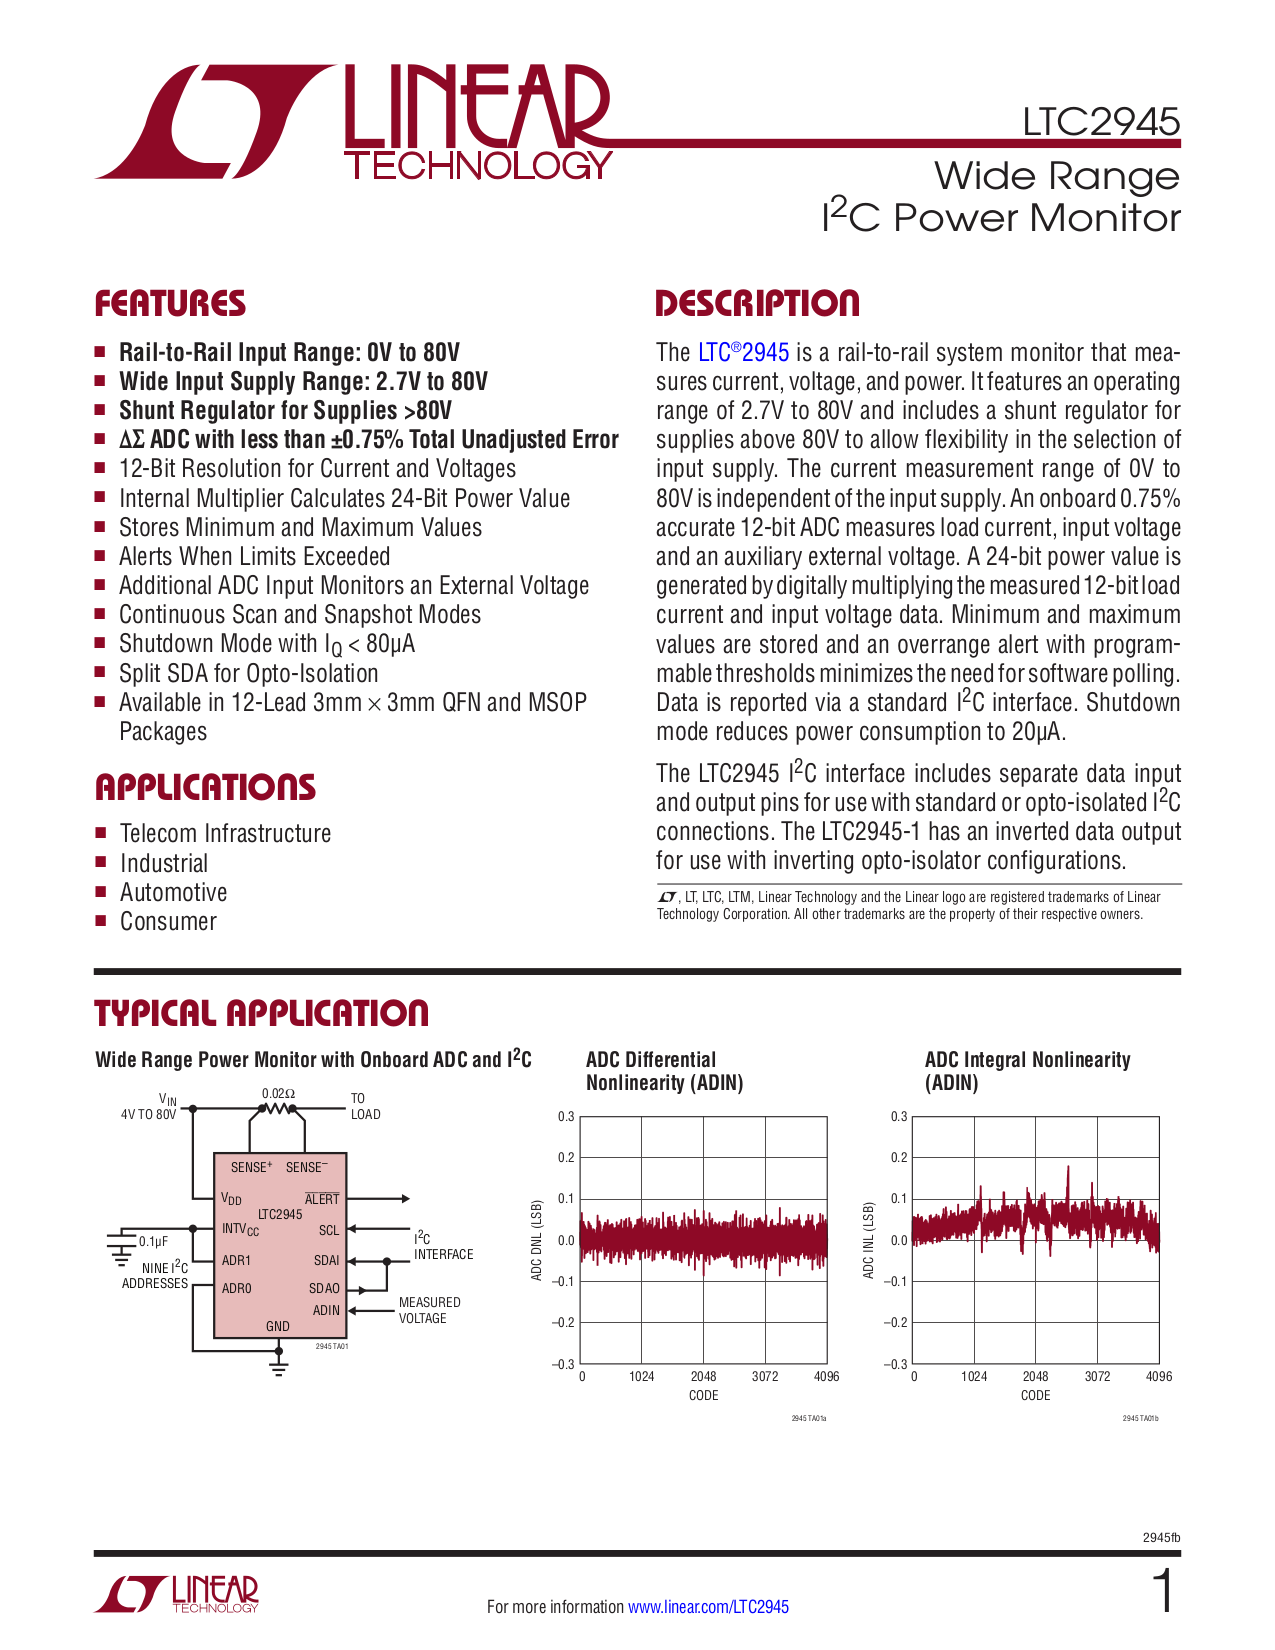 Control Help For Noninverting Buck Boost Converter Question Mbed